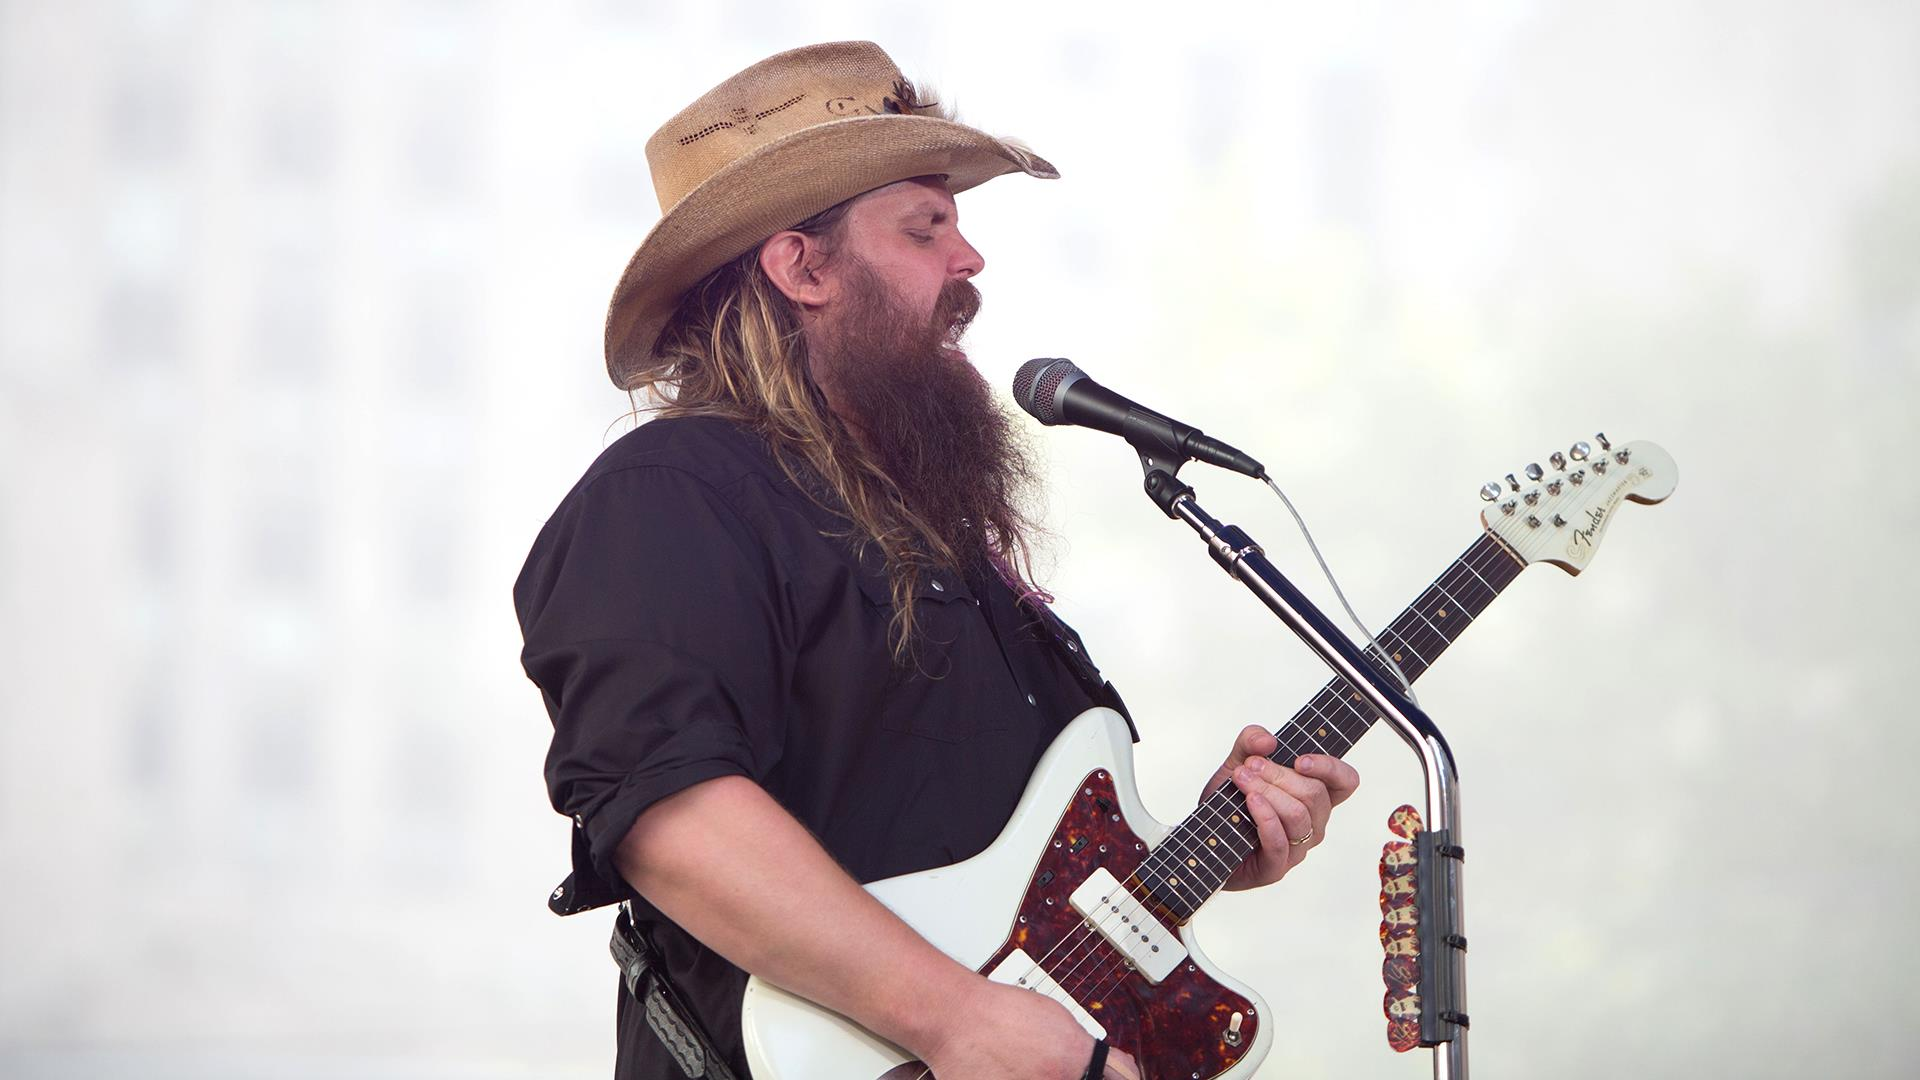 stapleton single parents The holidays can be even tougher when you've just come out of a divorce or are a struggling single parent  single parent holidays can be  chris stapleton .